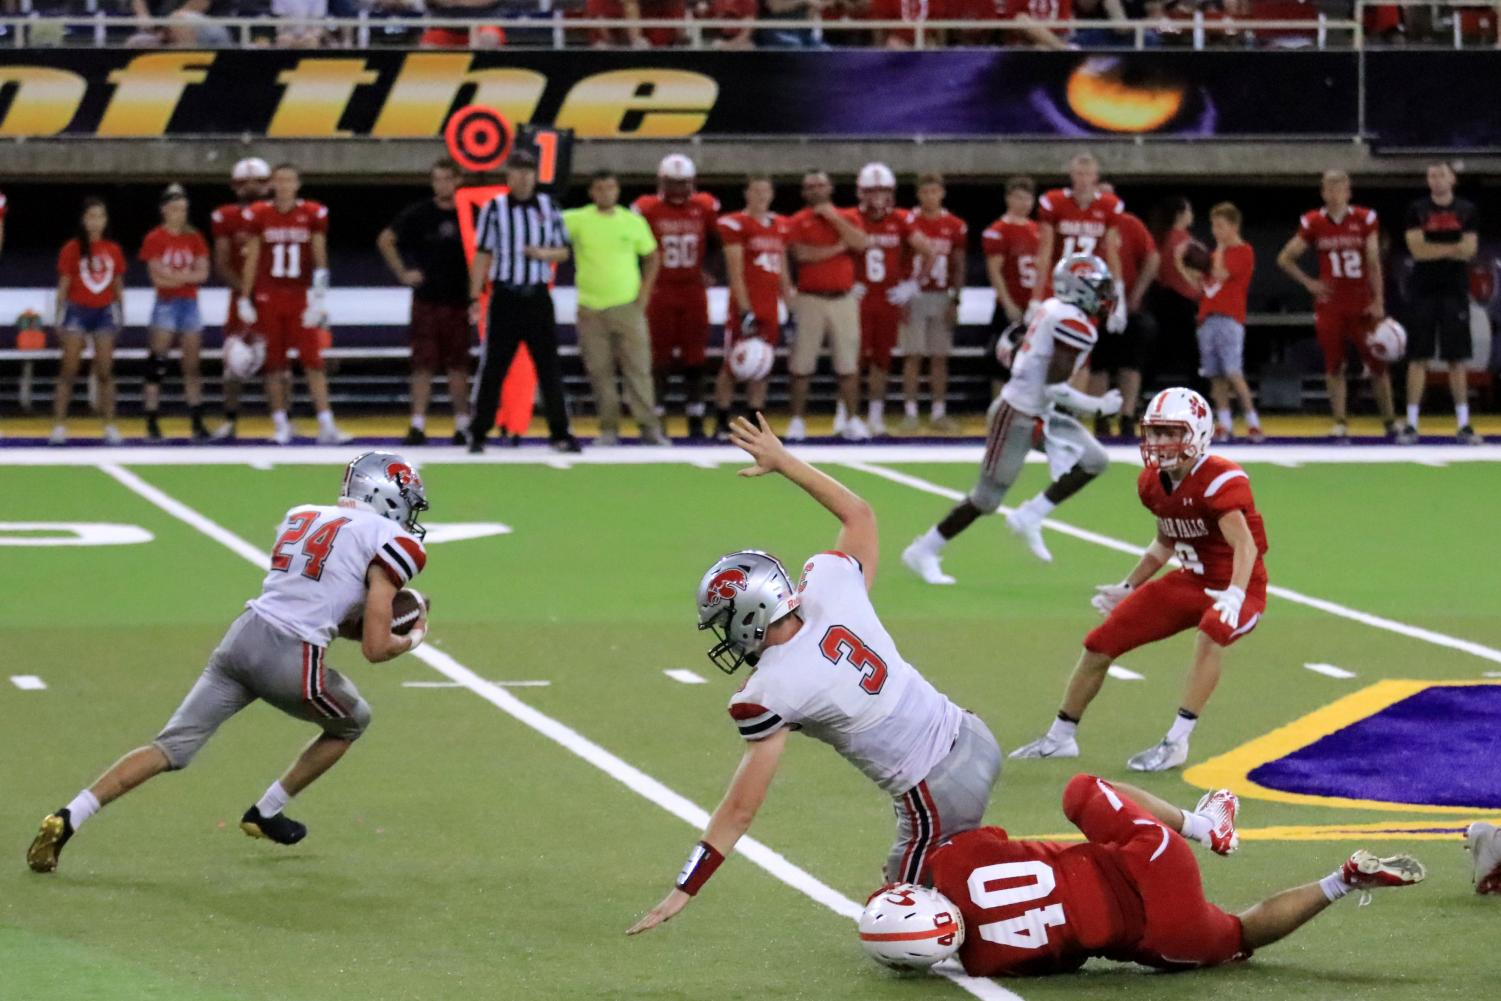 Cedar Falls Overcomes City High 47-0